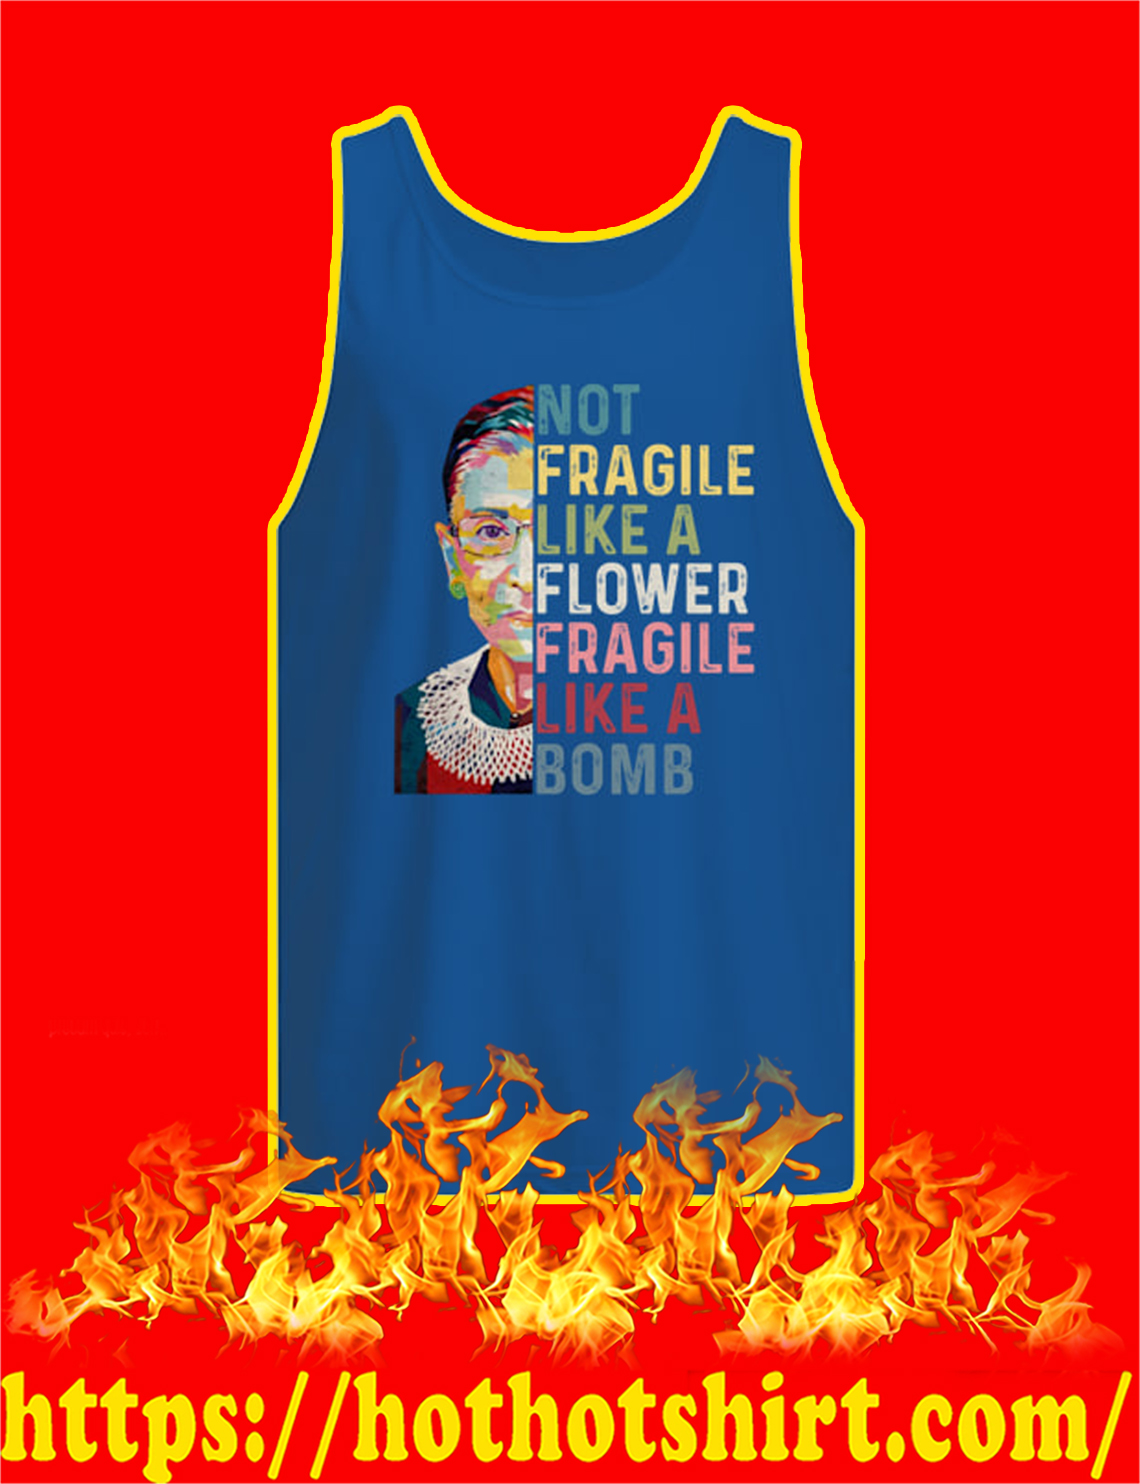 Ruth Bader Ginsburg Not Fragile Like A Flower Fragile Like A Bomb tank top